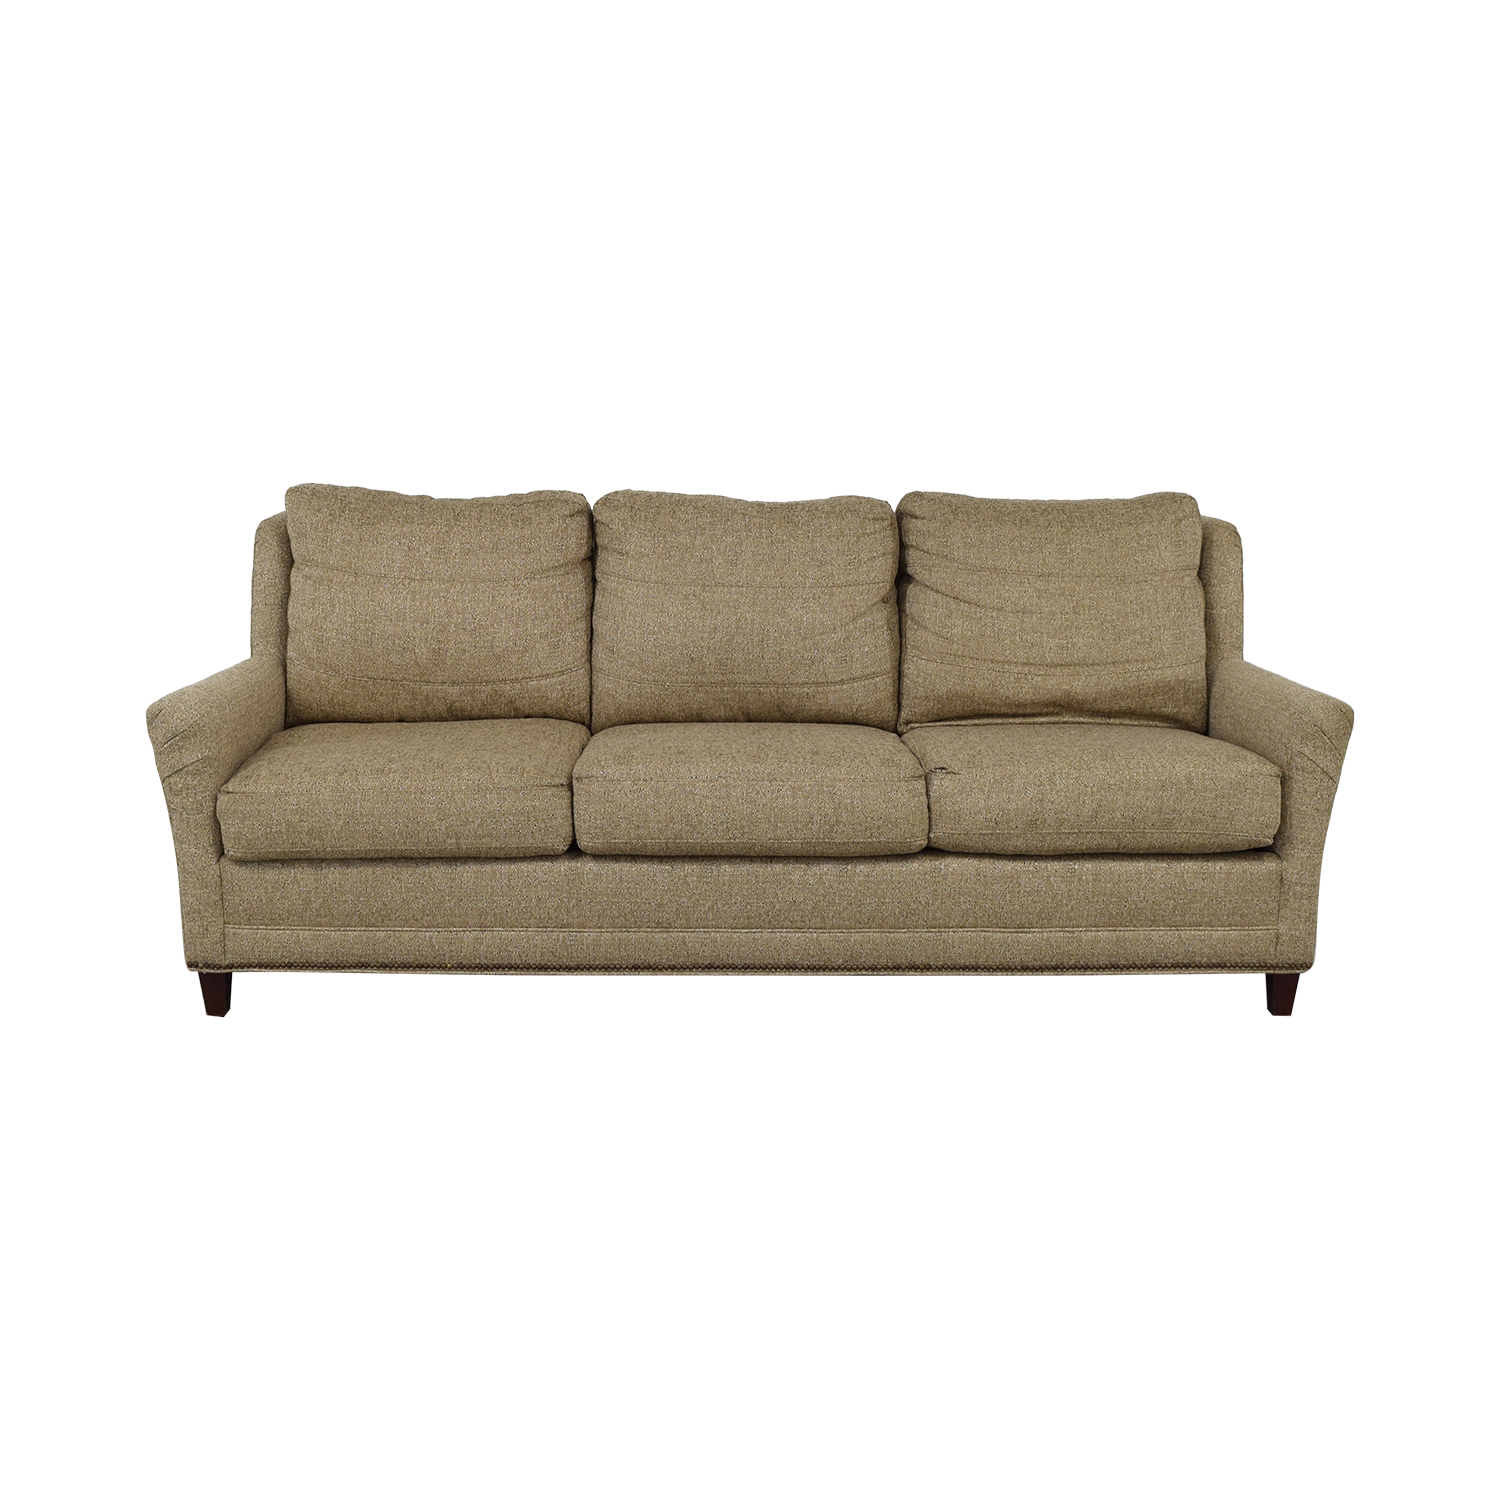 Harden Three Cushion Sofa / Classic Sofas